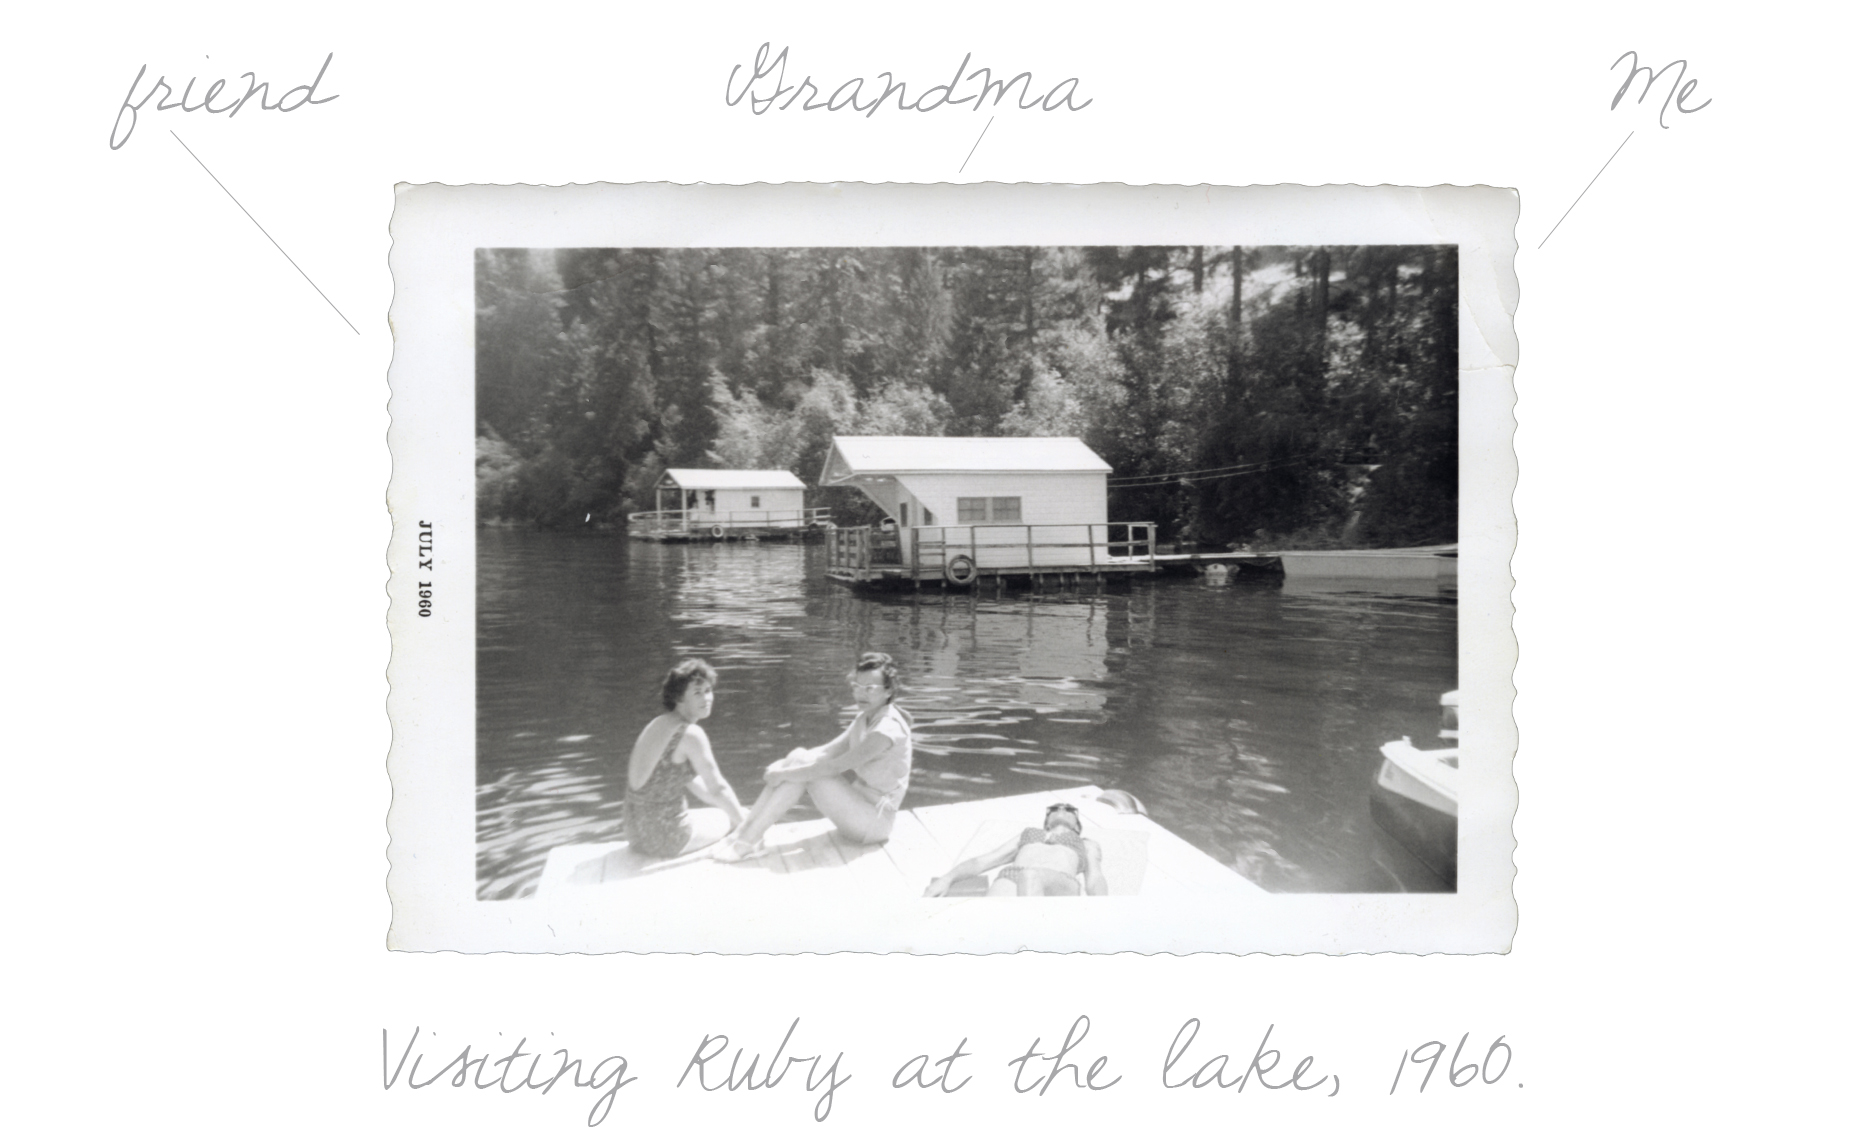 Visiting Ruby at the Lake 1960 TXT